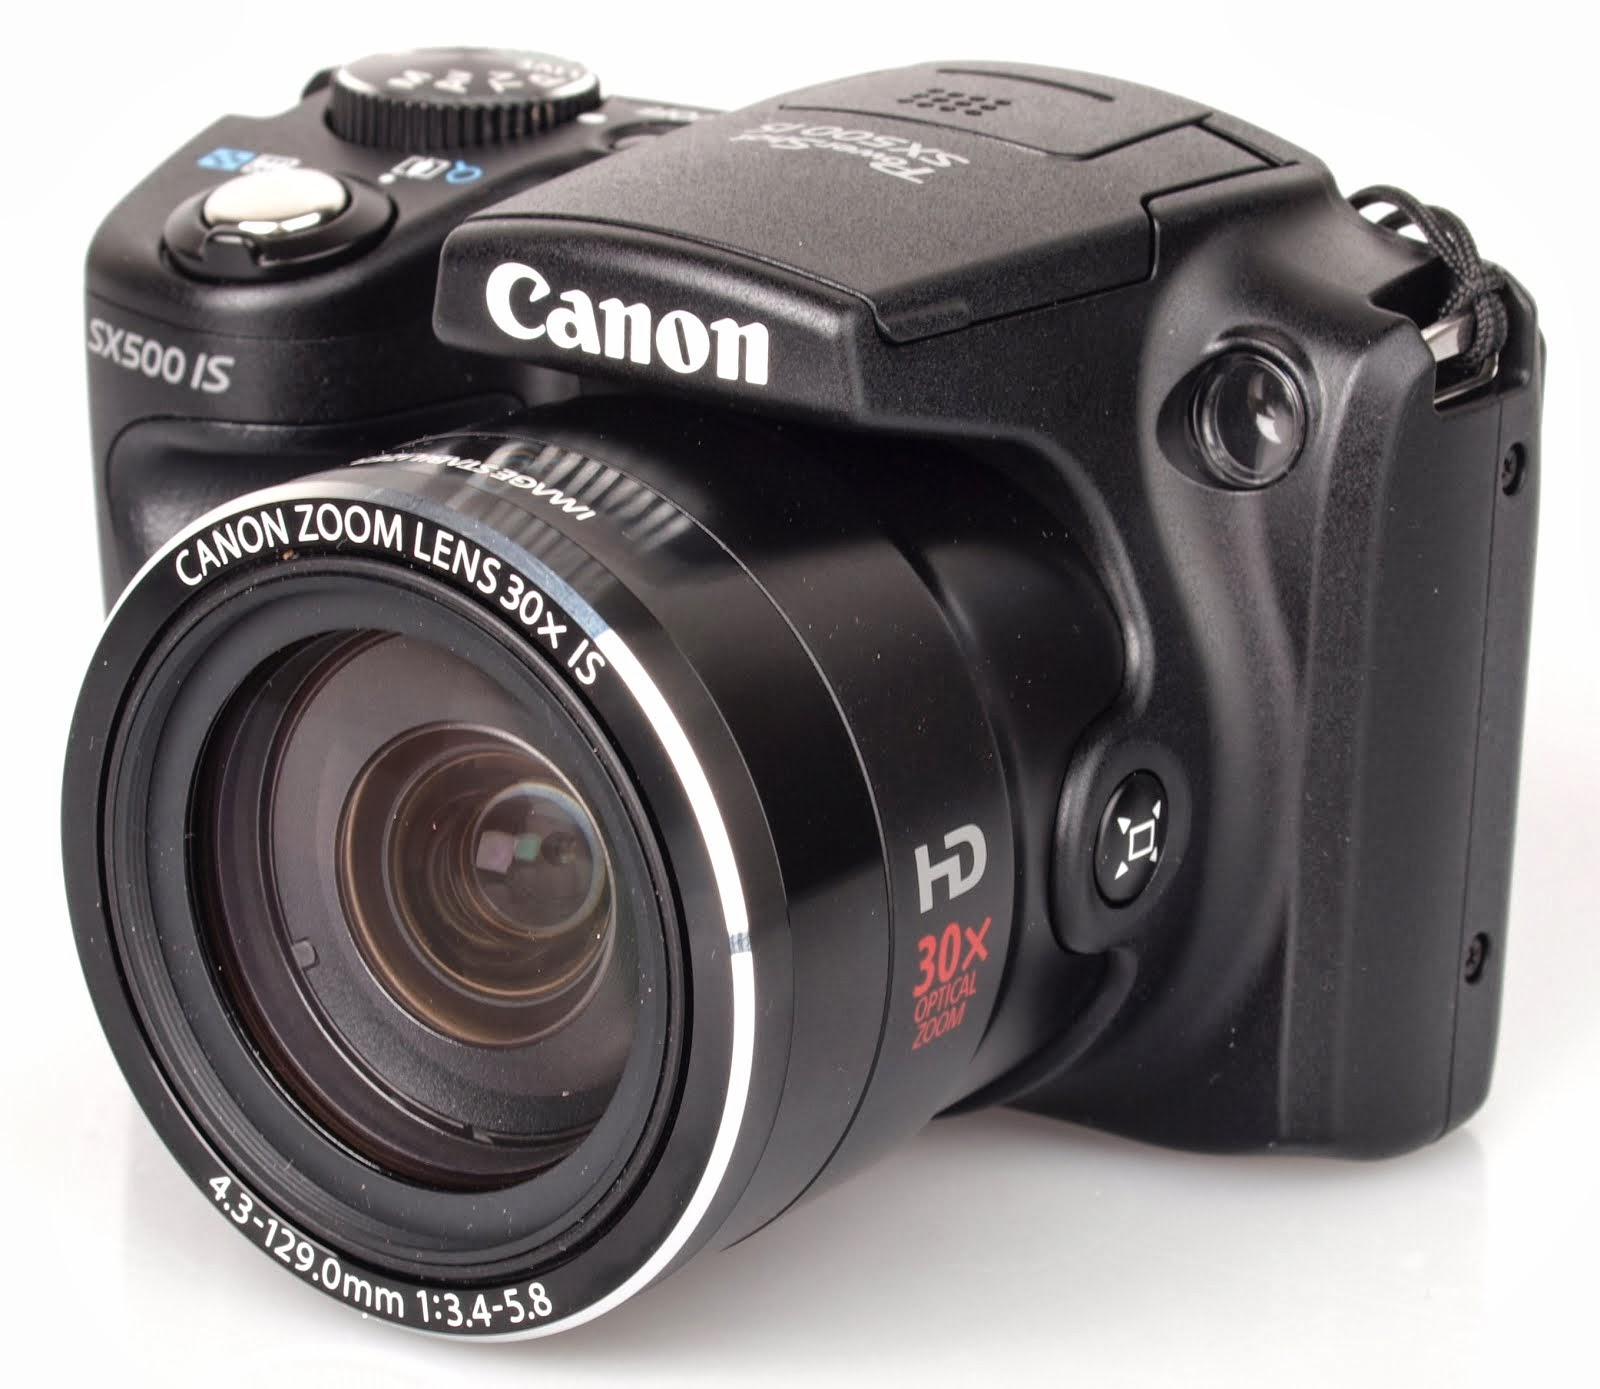 Canon PowerShot SX500 IS 16.0 MP